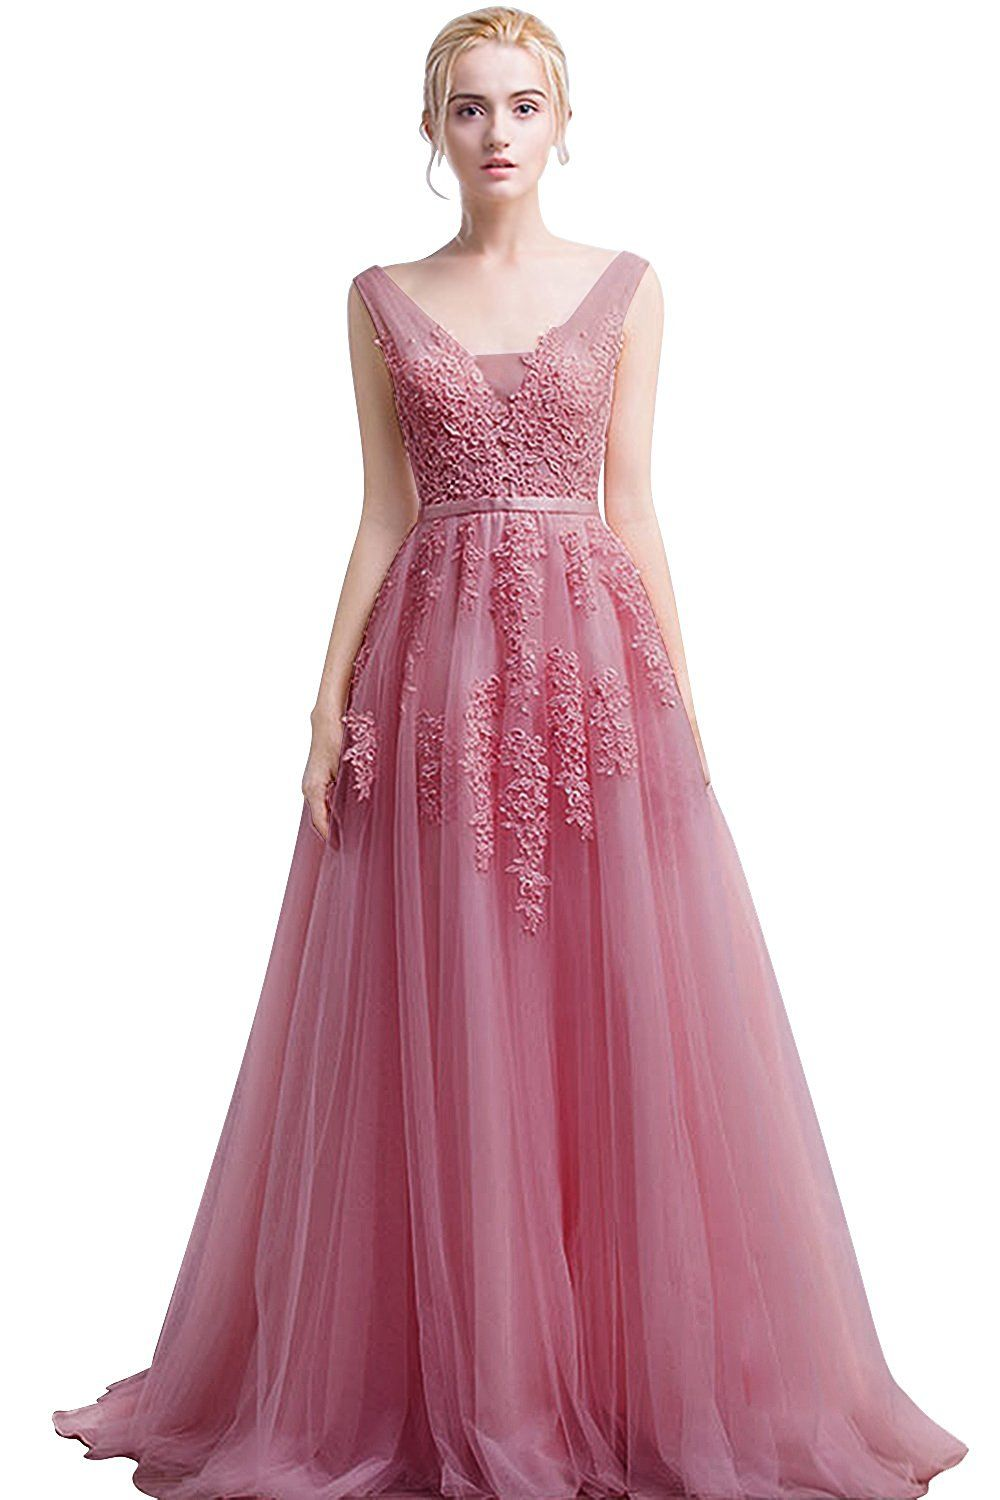 f41a5aac8bc5 Amazon.com: Babyonline Women's Double V-neck Tulle Appliques Long Evening  Cocktail Gowns: Clothing